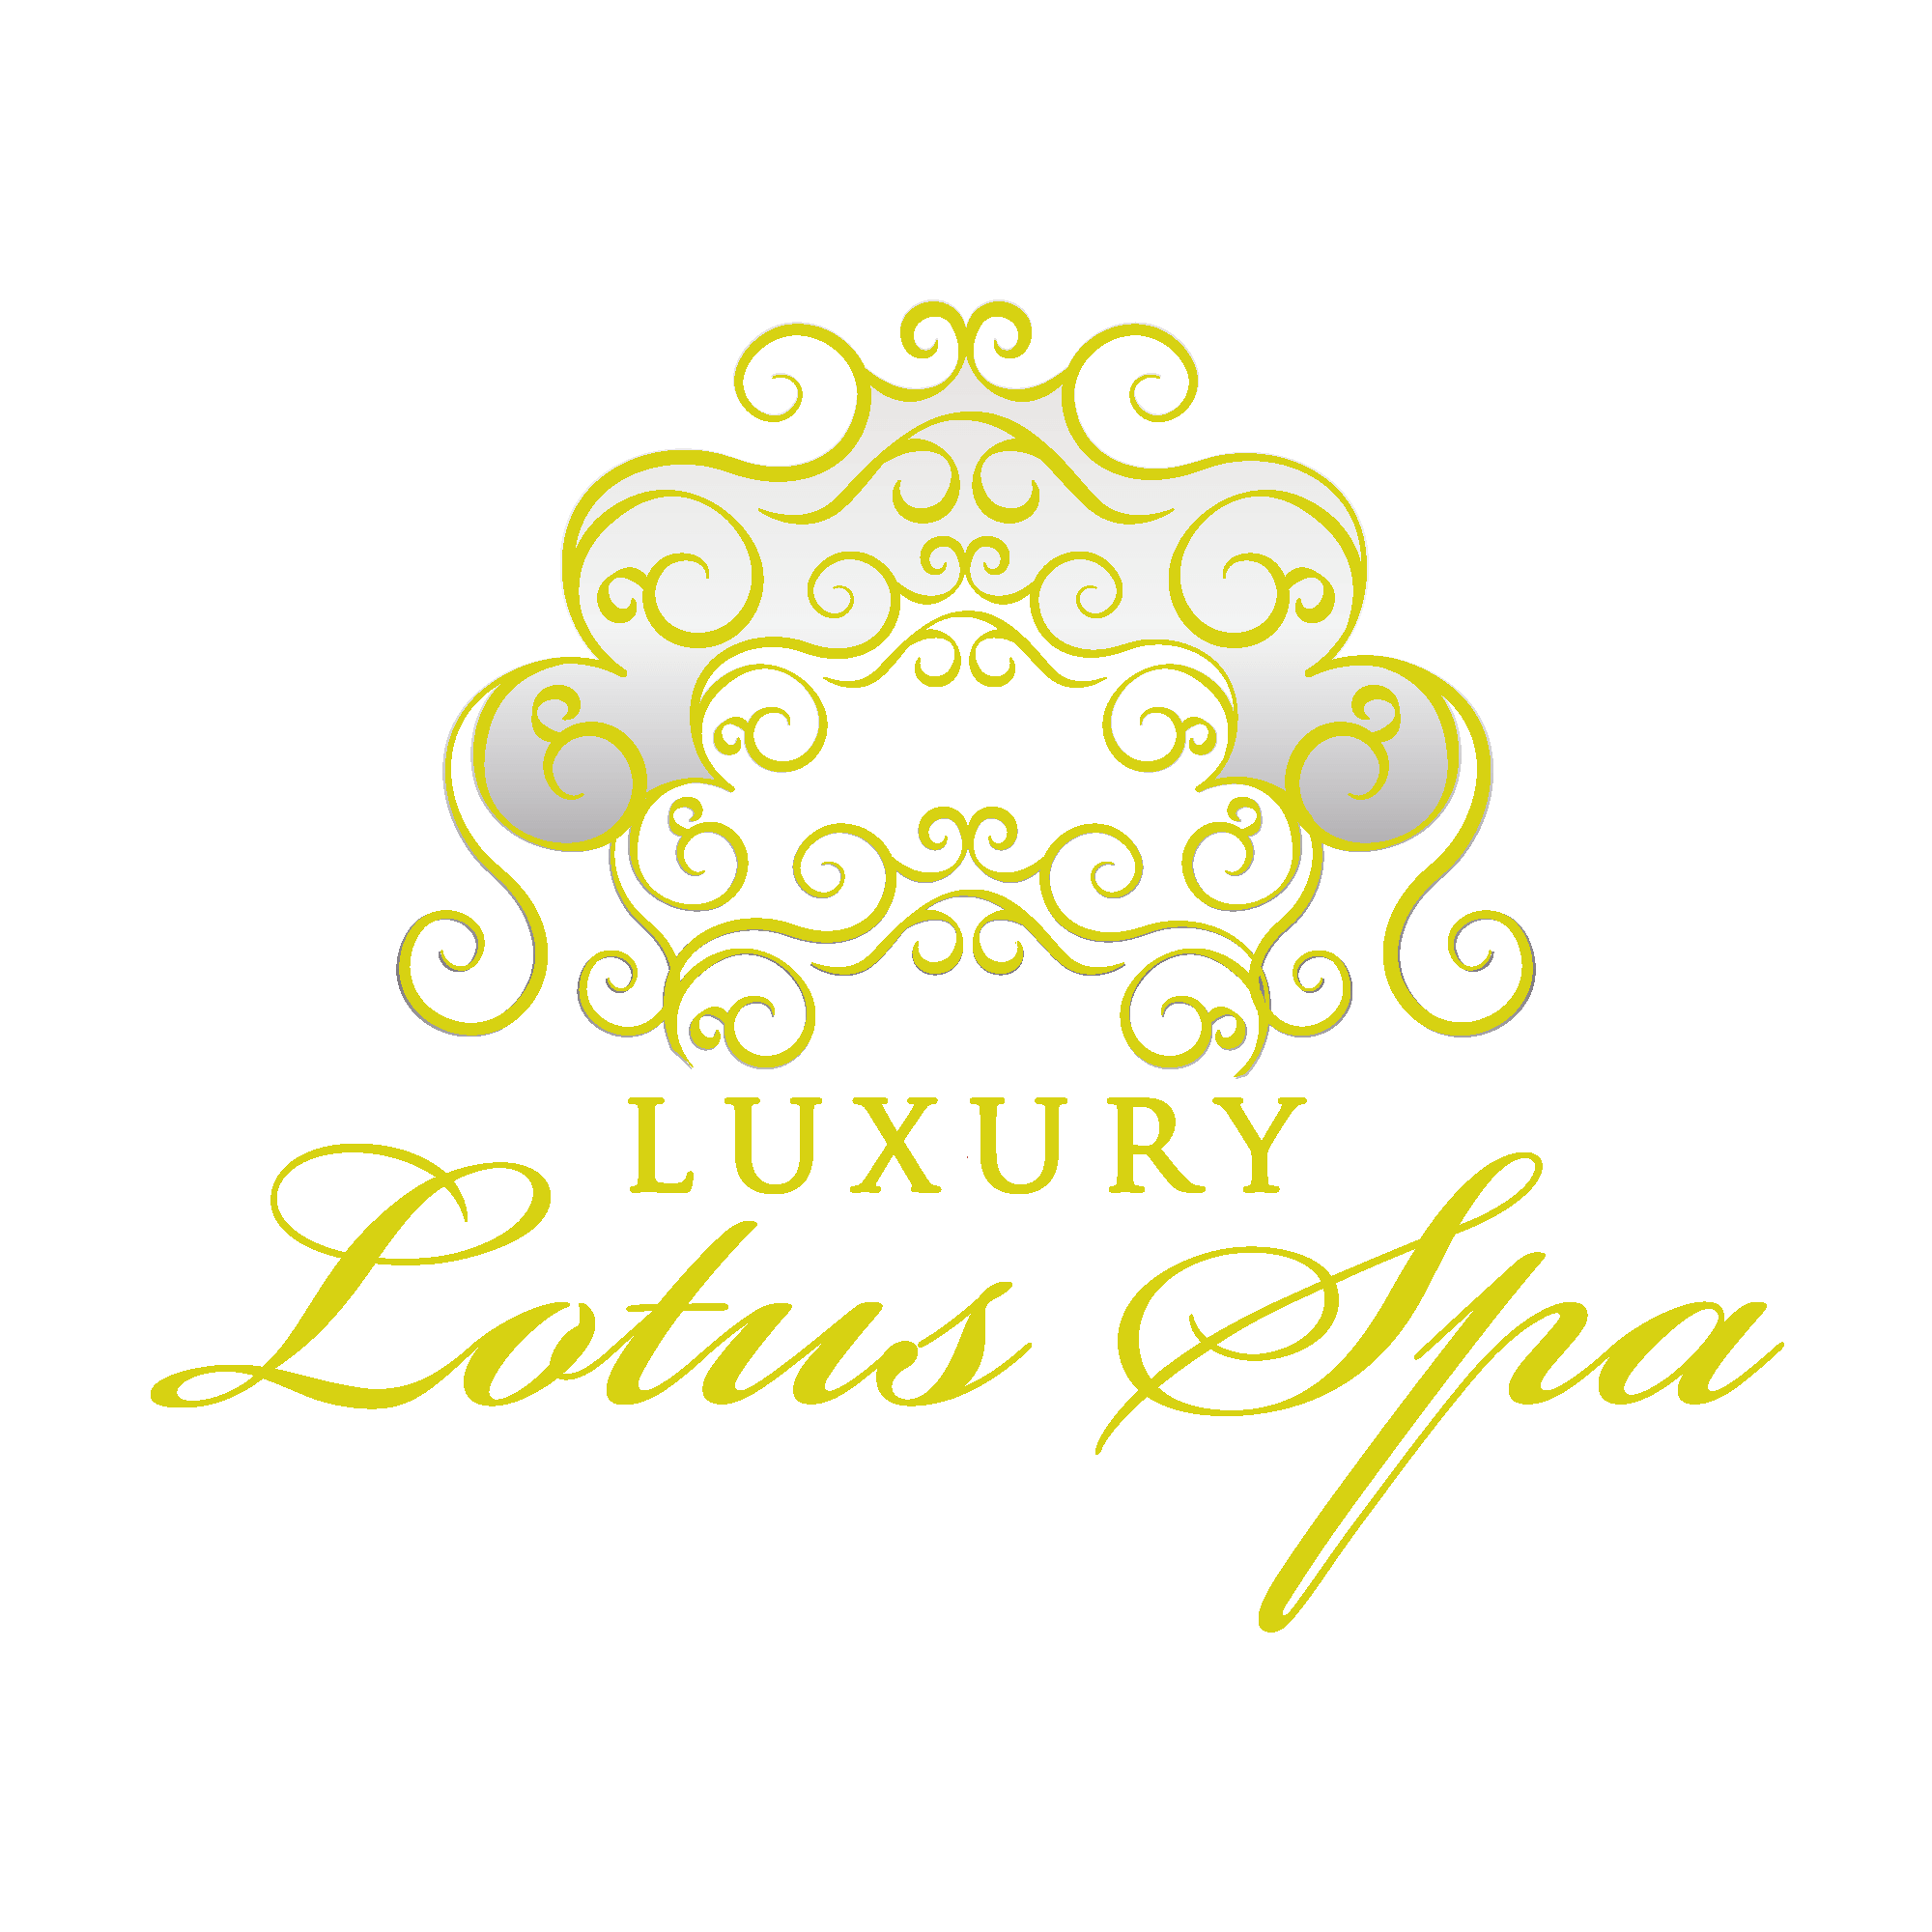 acne scars specialist in tampa, flLuxury Lotus Spa online store spa boutique helping melanin beauties clear up acne and acne scars naturally for men and women with darker skin tone african american hatian jamaican, afro latinas